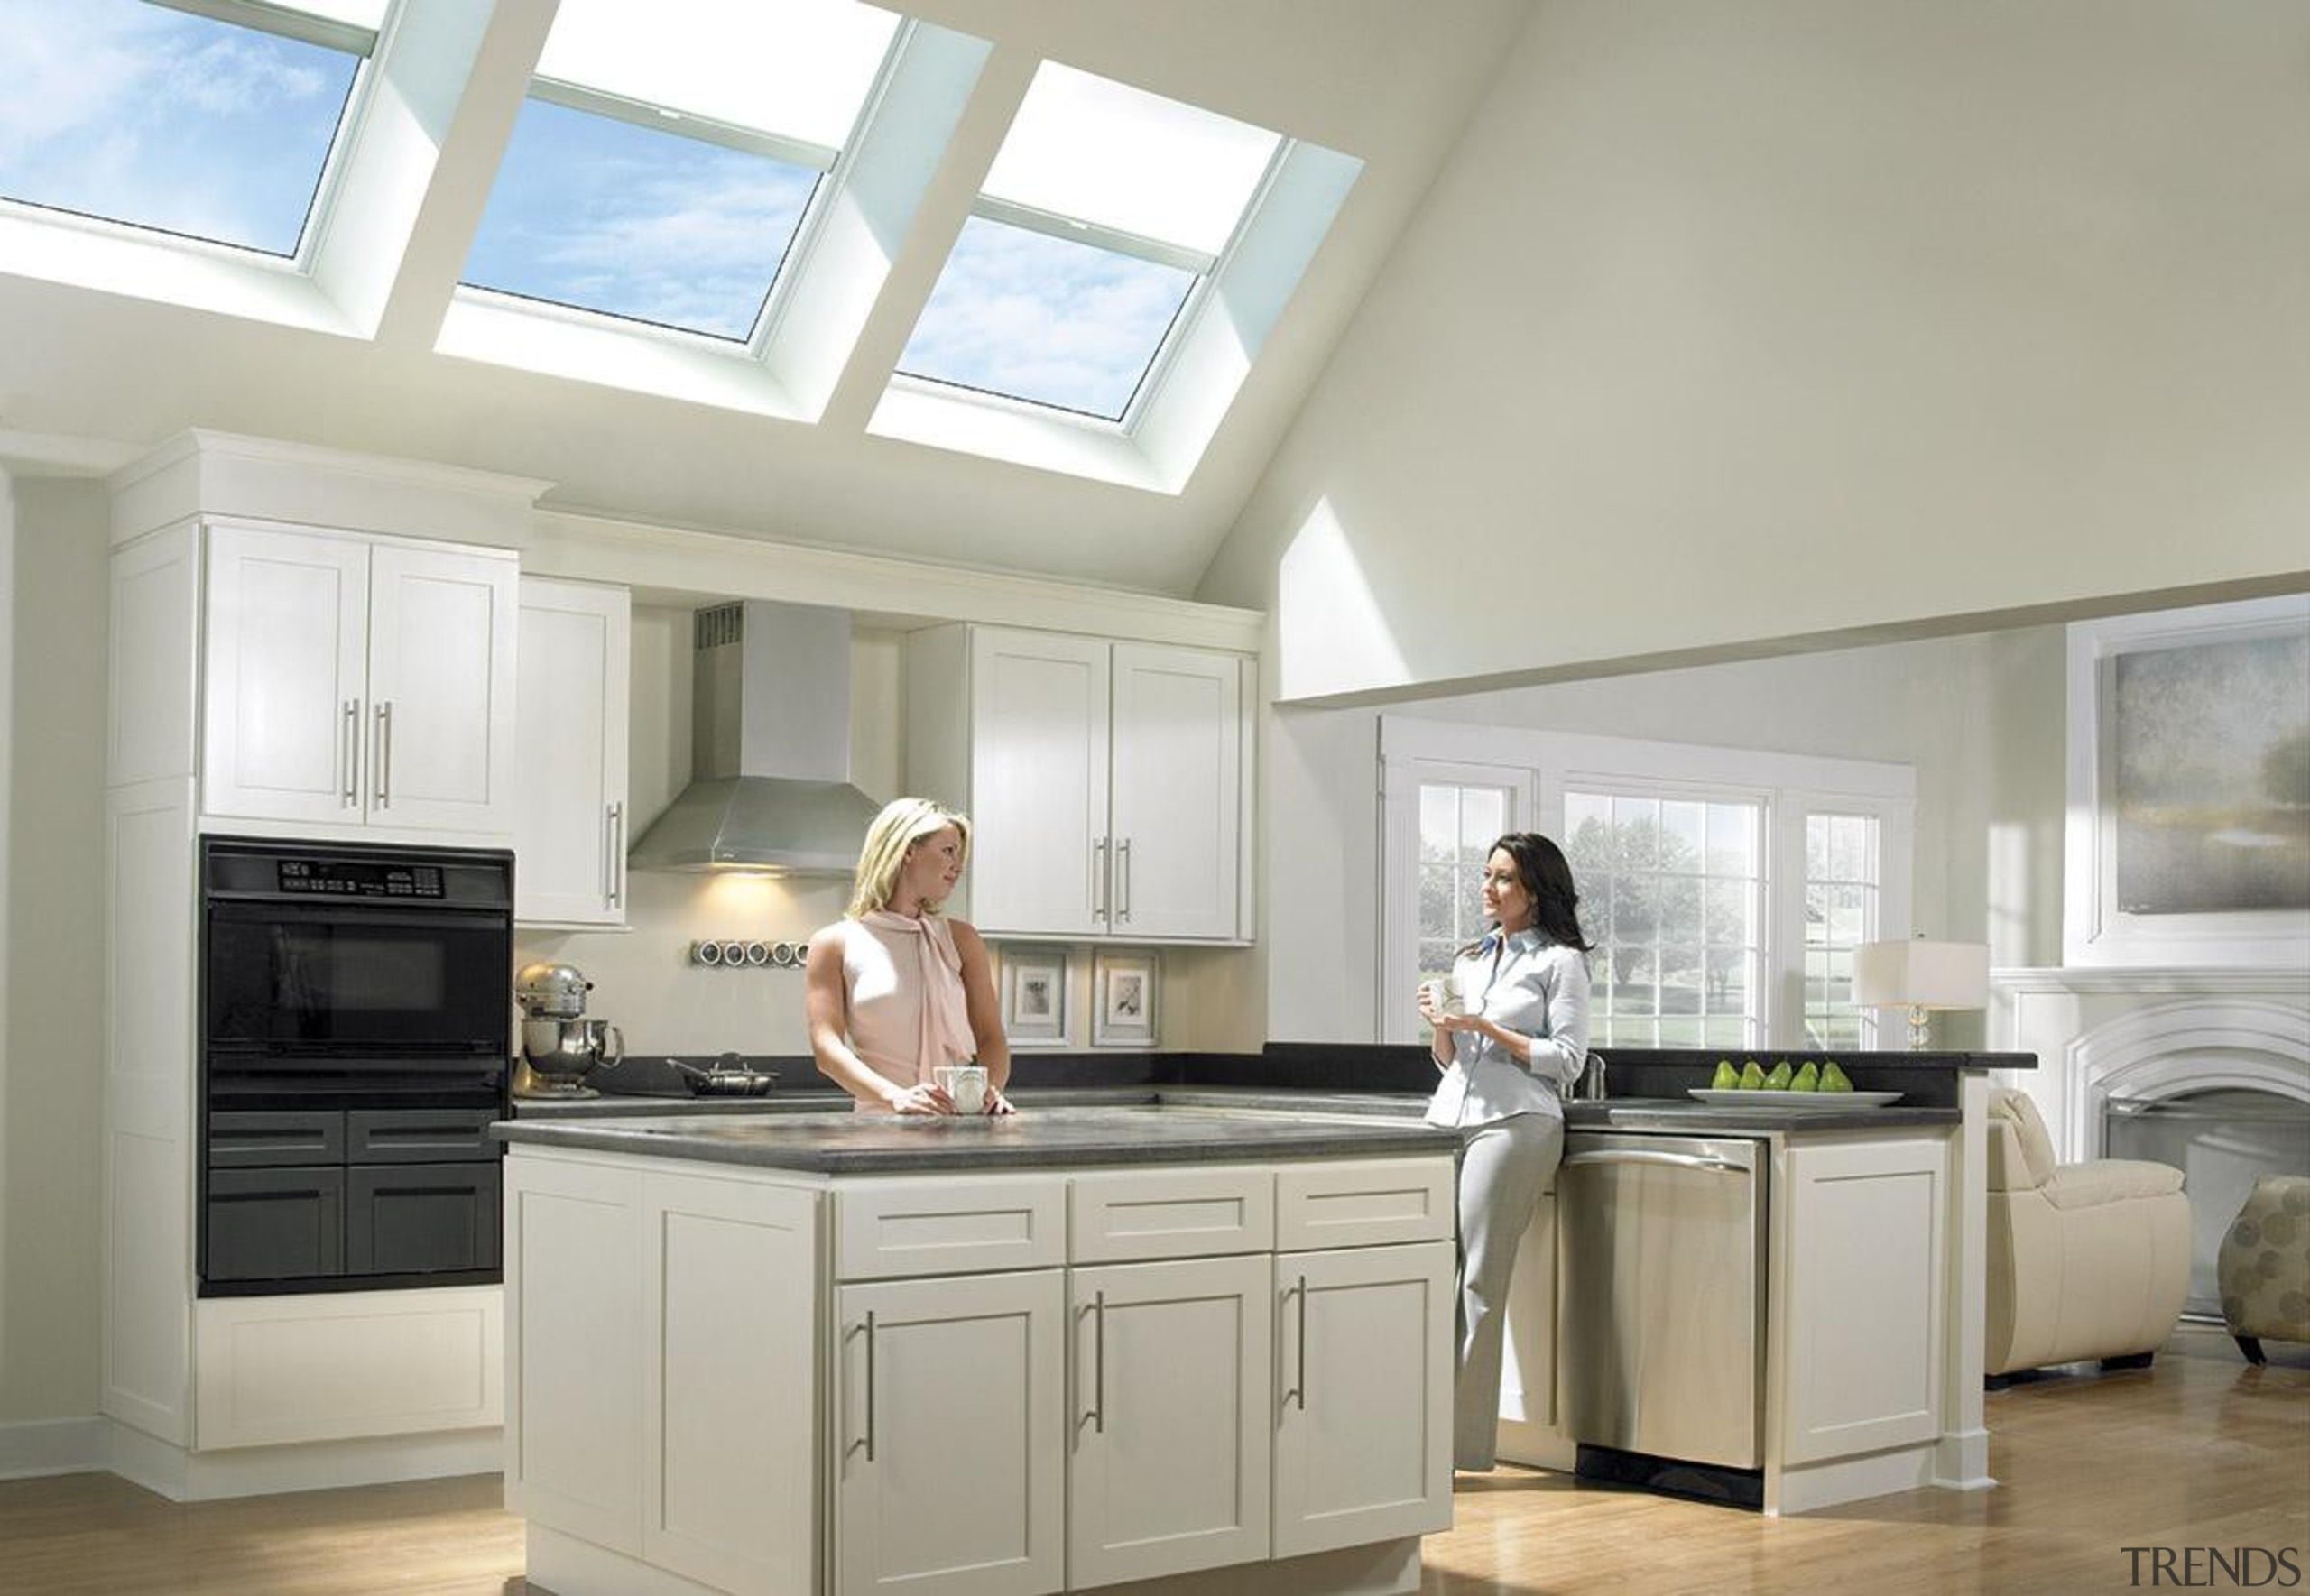 Bringing in natural light and fresh air, skylights countertop, cuisine classique, interior design, kitchen, room, window, gray